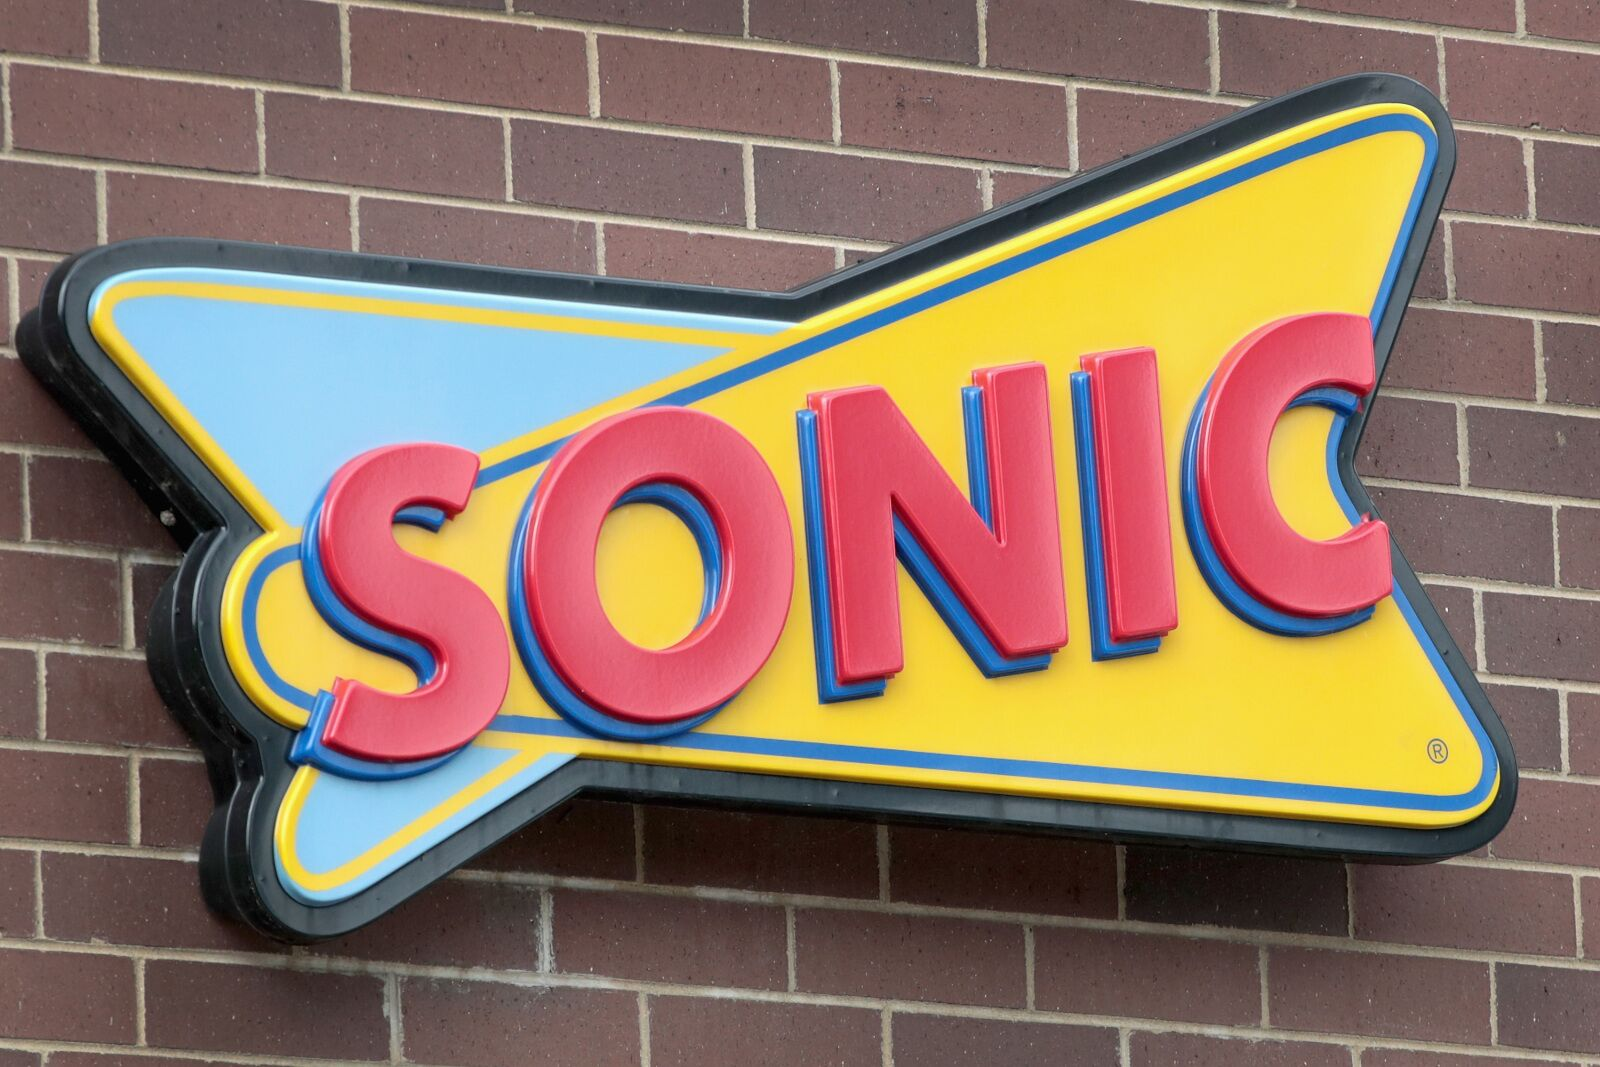 Sonic Drive-in must-have: Oreo cookie ice cream sandwiches